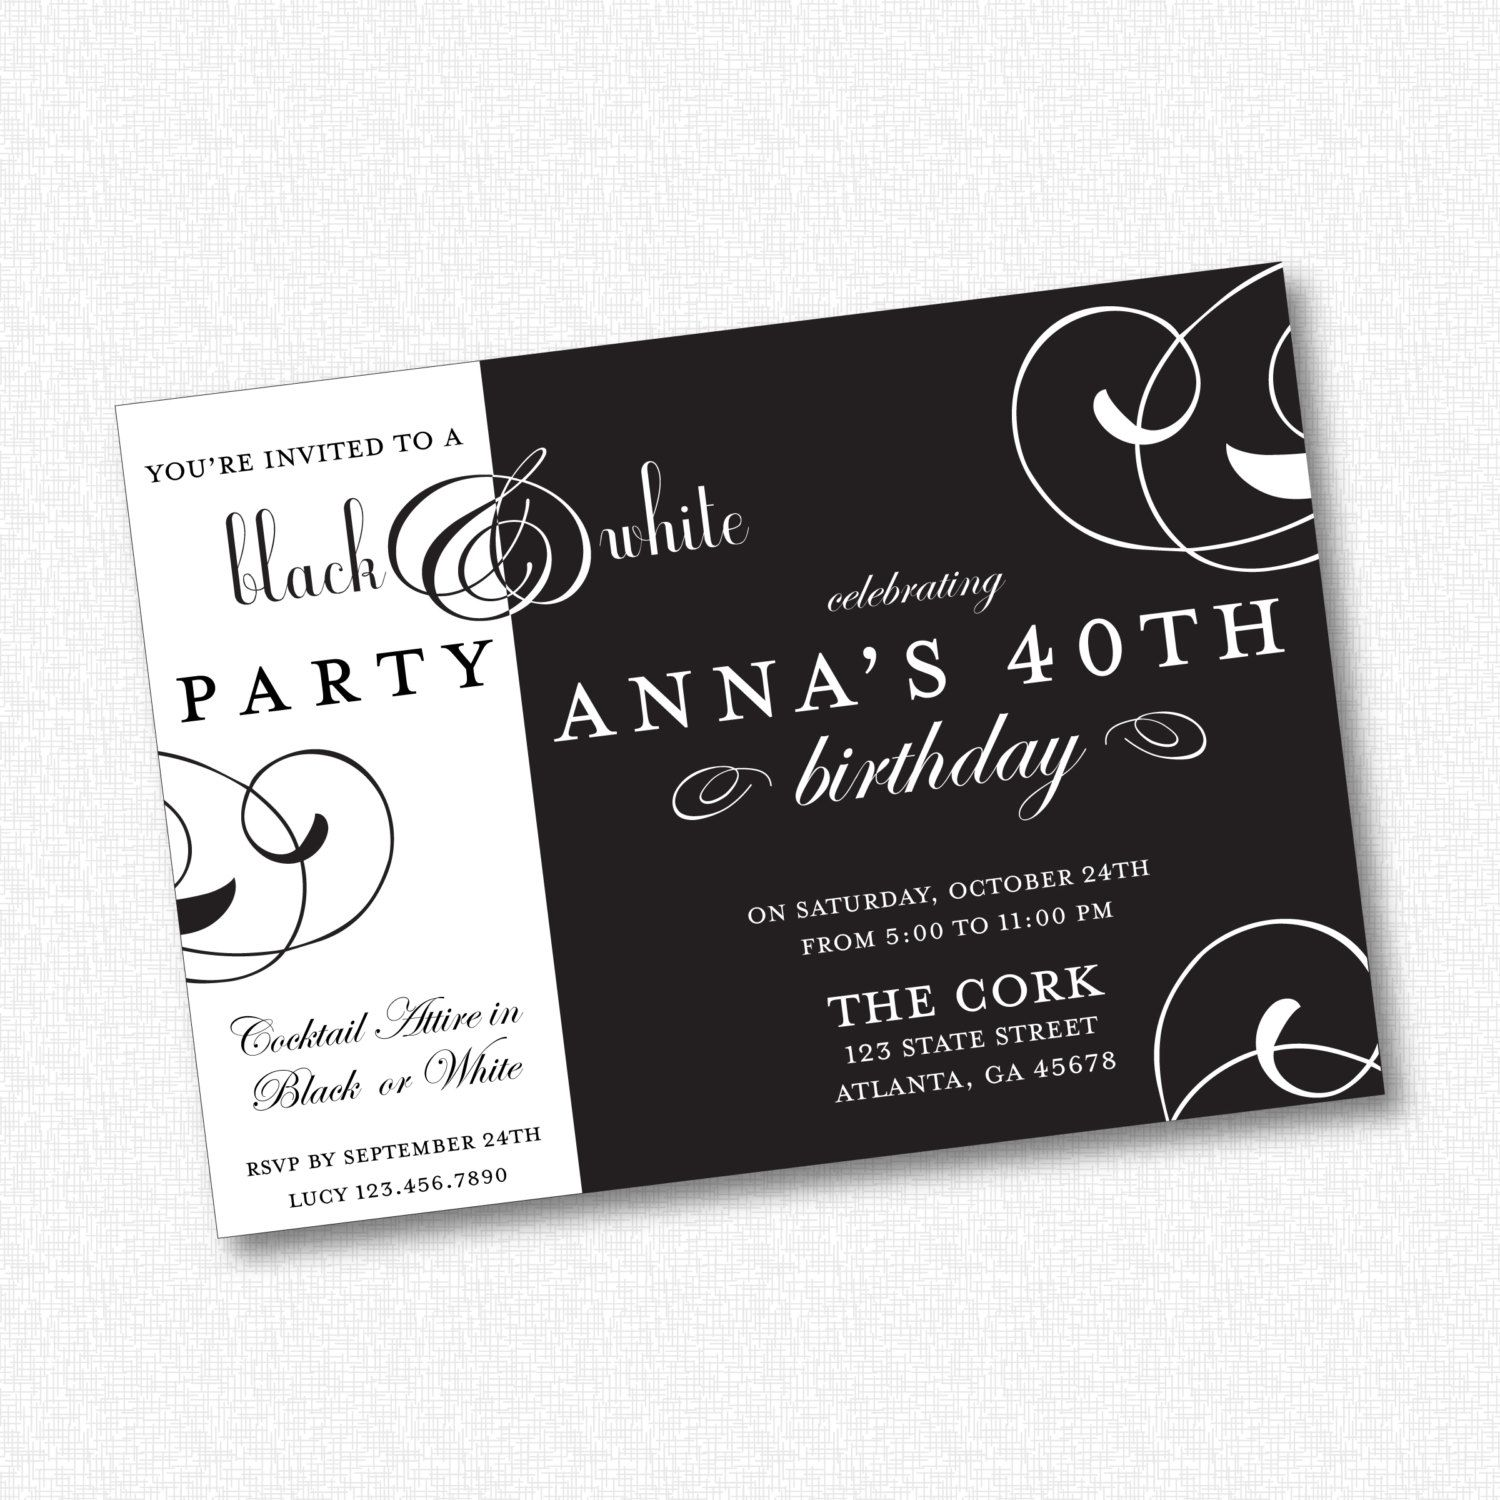 Black+&+White+Party+Invitation++PRINTABLE+21301+by+idconsultdesign ...